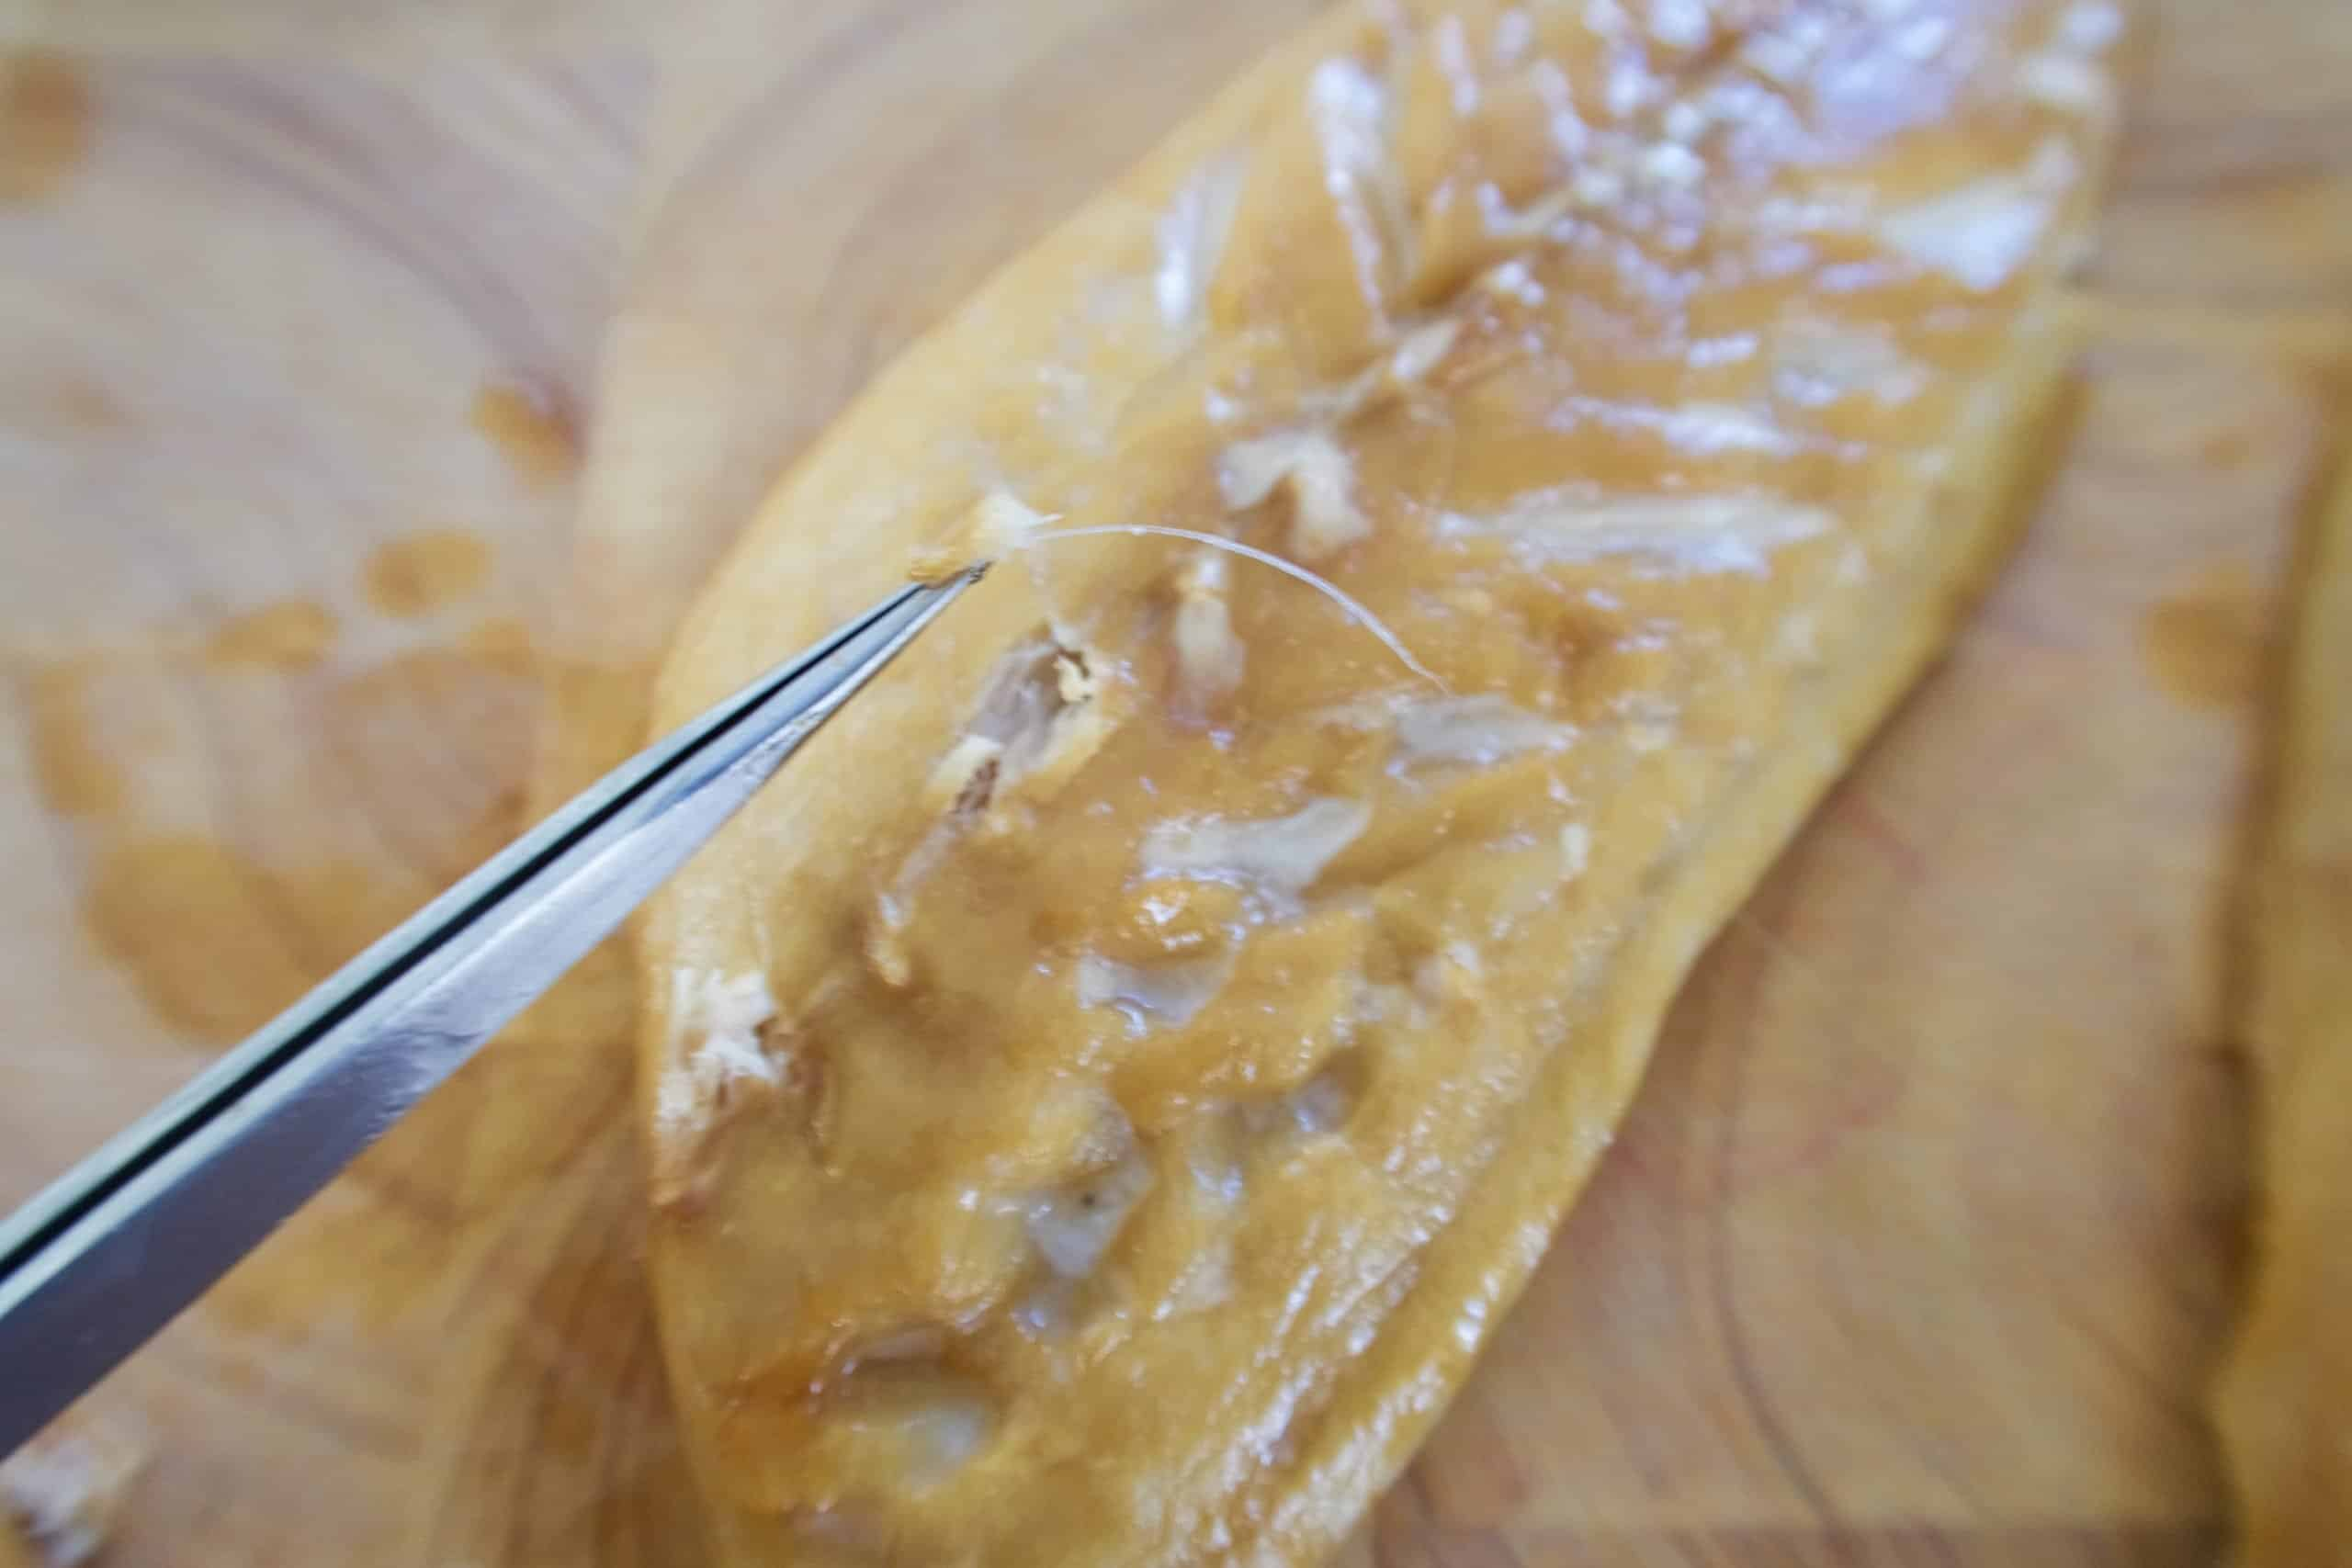 smoked mackerel pate removing fine bones from fillets with tweezers on a wooden chopping board